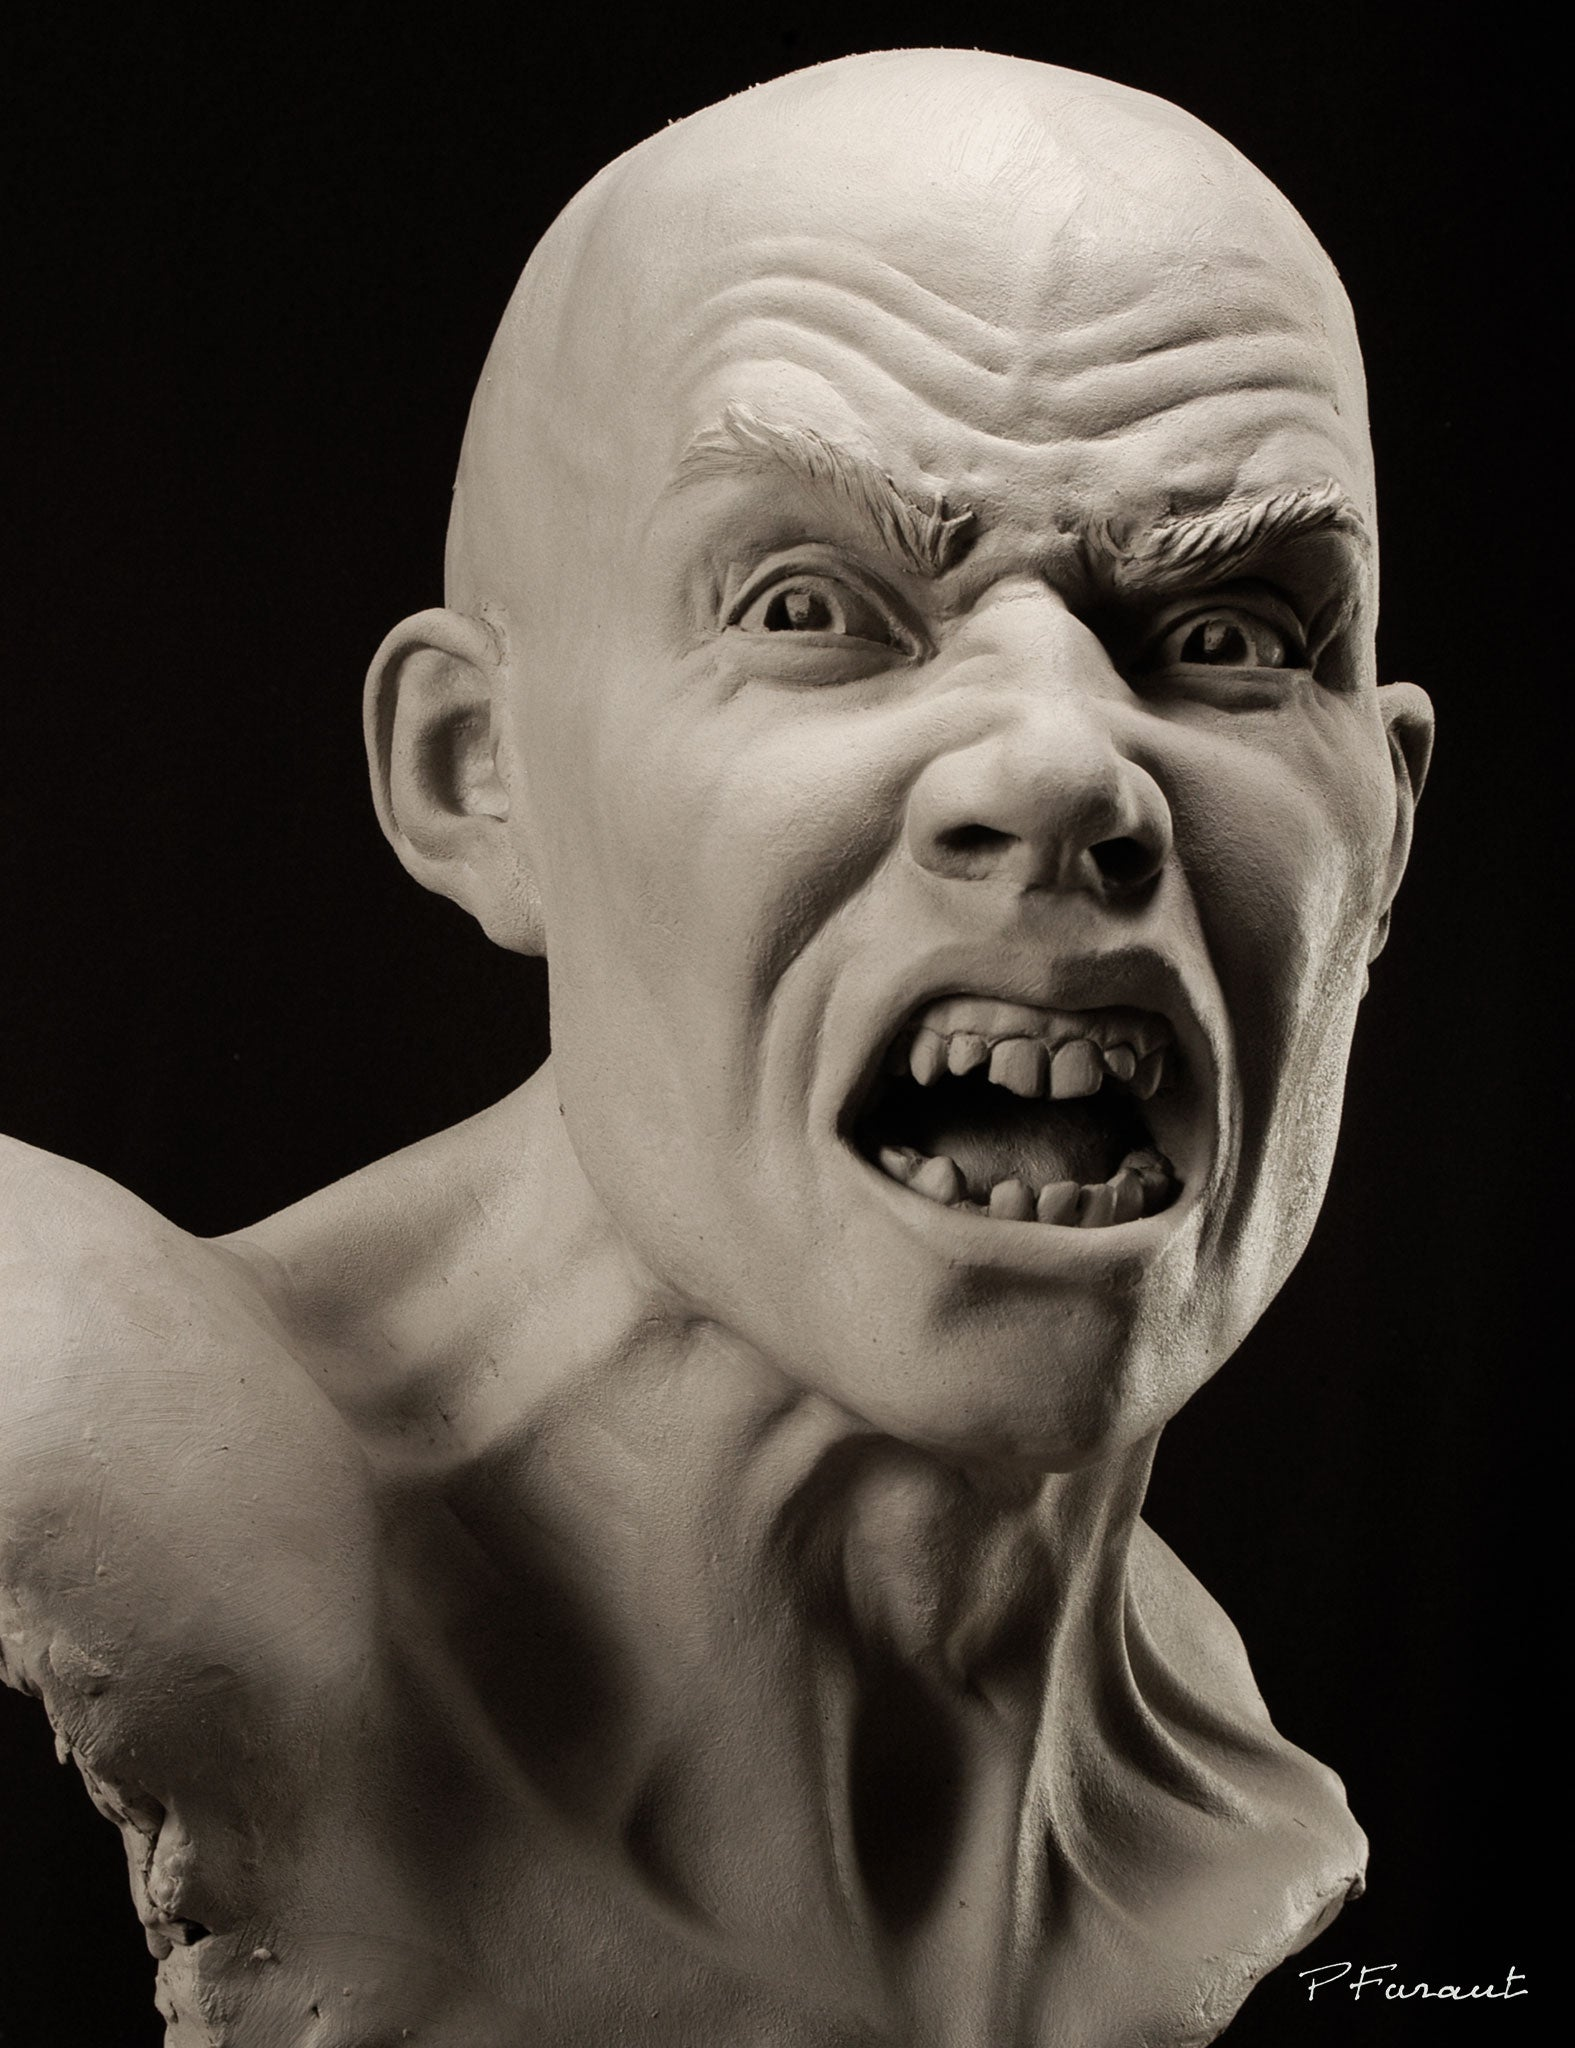 clay portrait screaming man with broken teeth Mutiny by Philippe Faraut